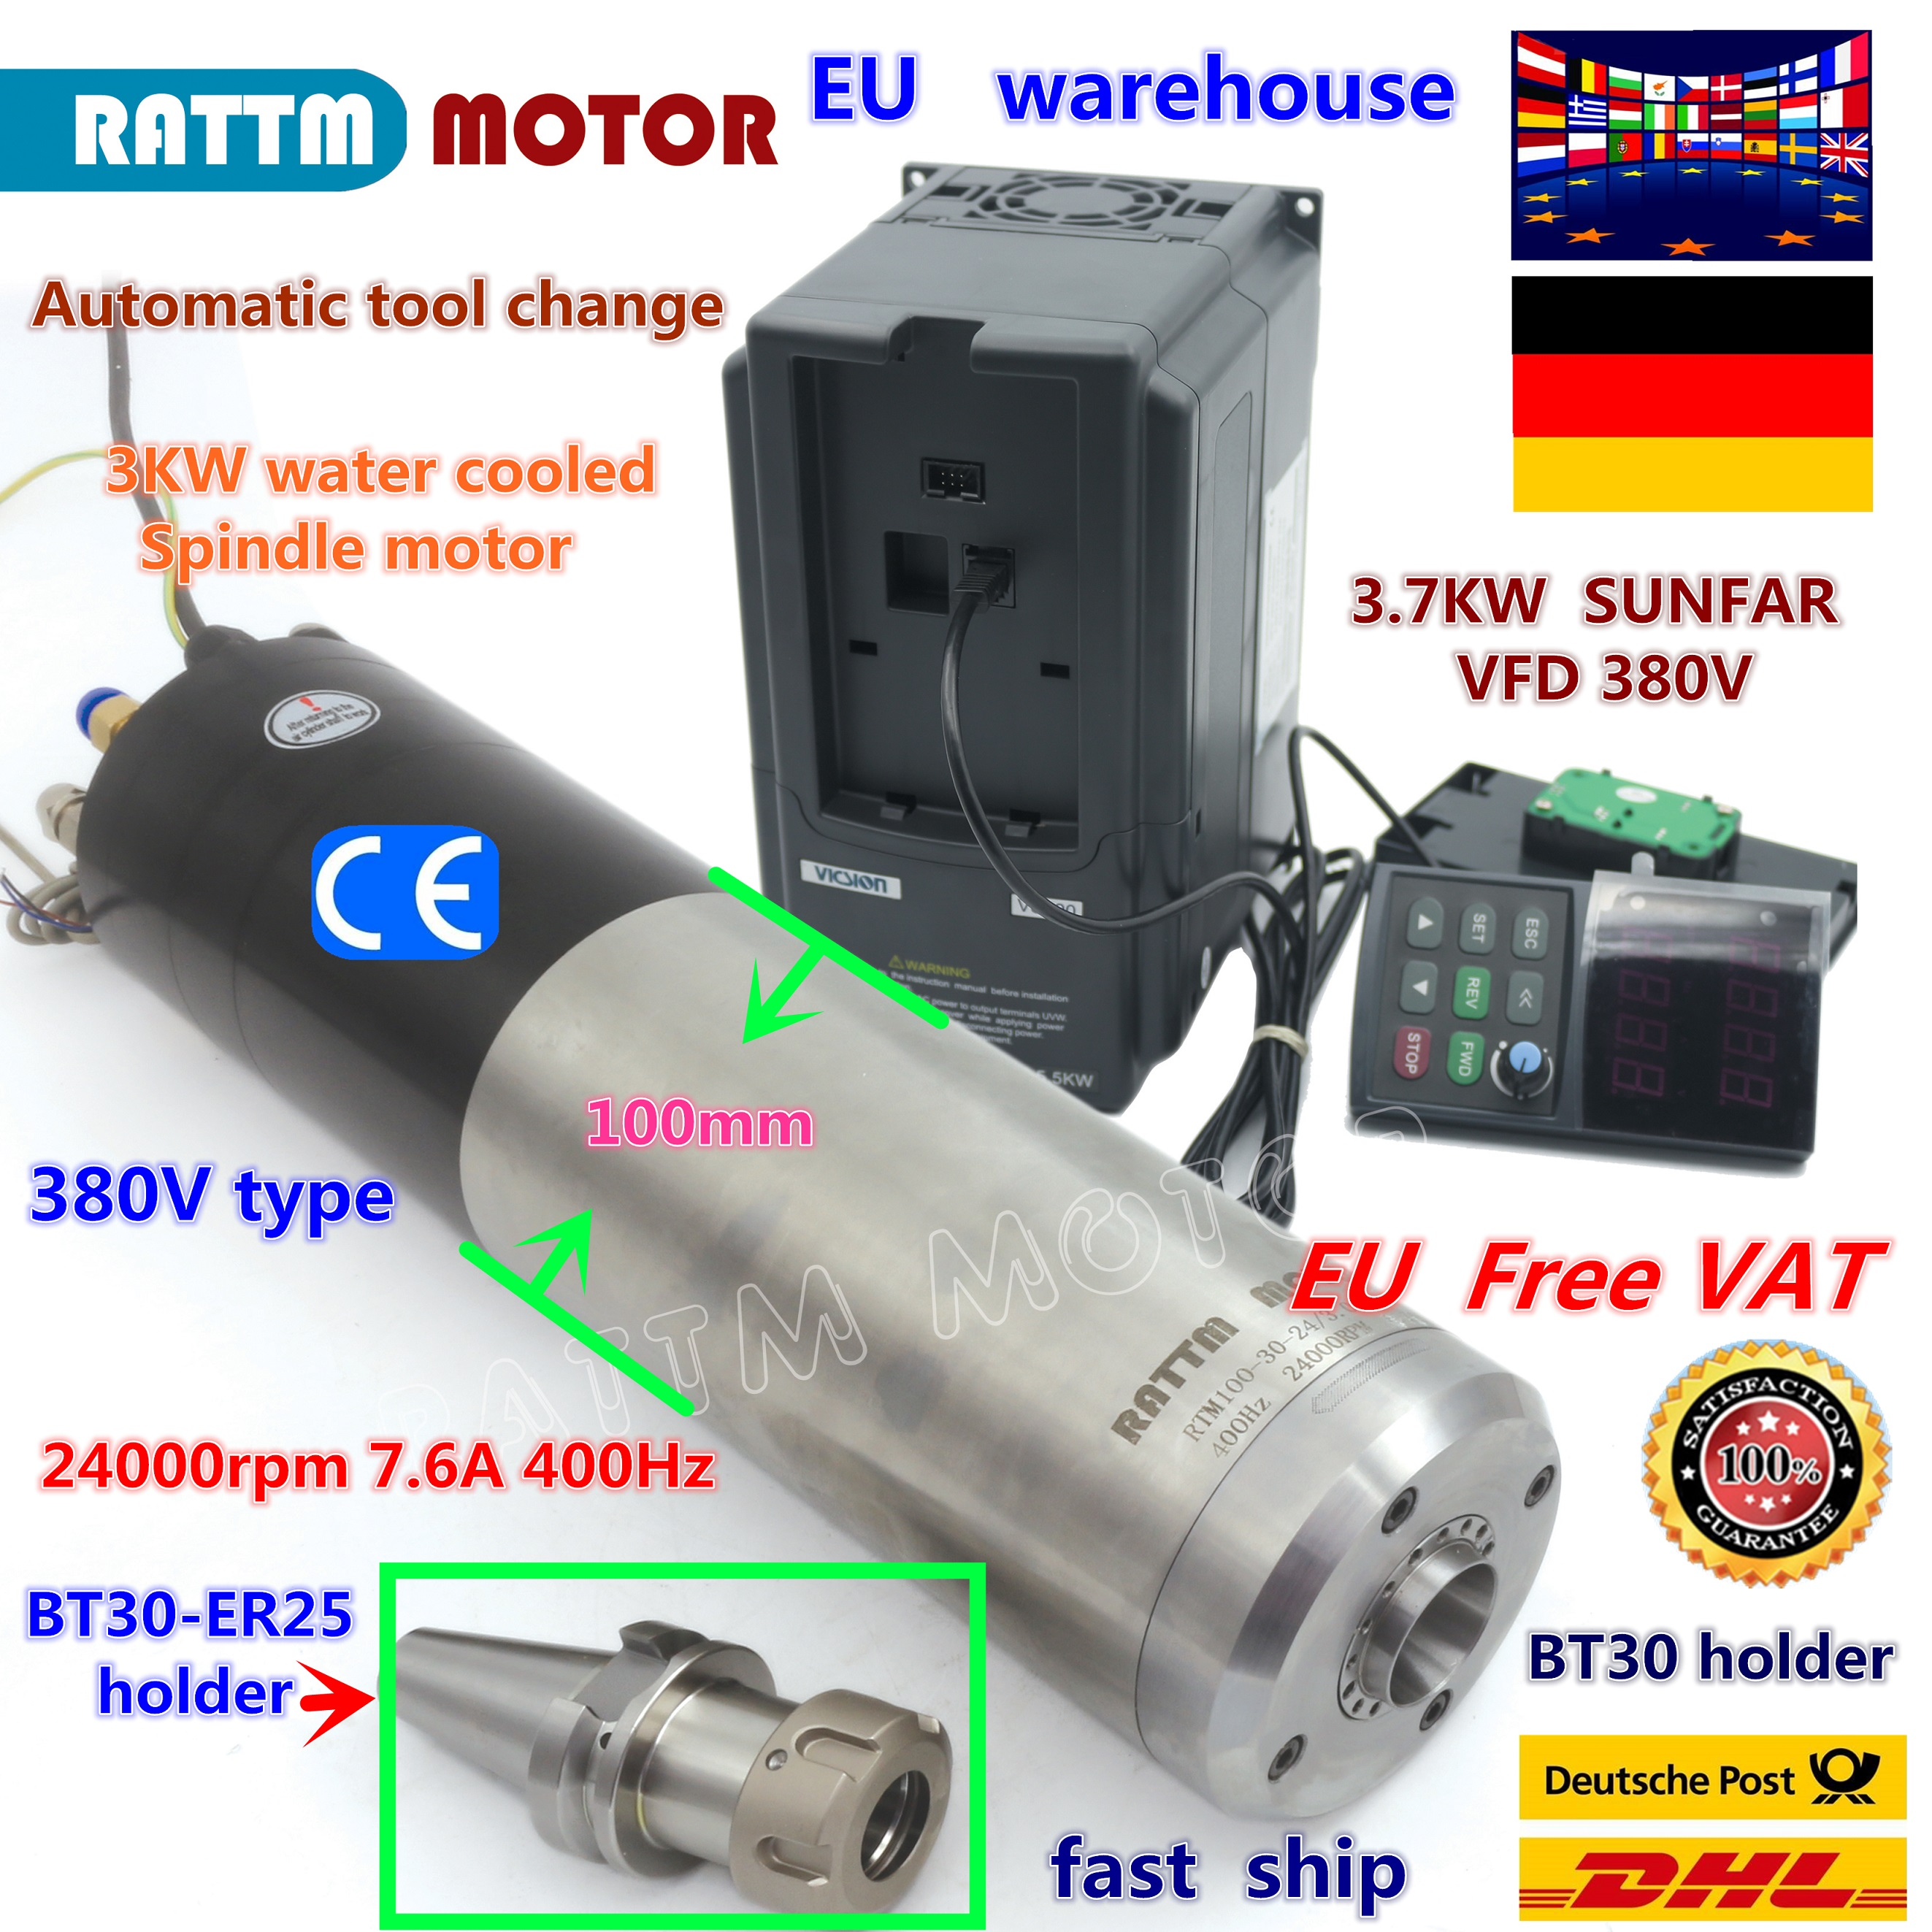 【Free VAT】 3KW ATC Water Cooled Automatic Tool Change Spindle Motor BT30 & 3.7KW VFD Inverter 220V / 380V FOR CNC Router MILLING